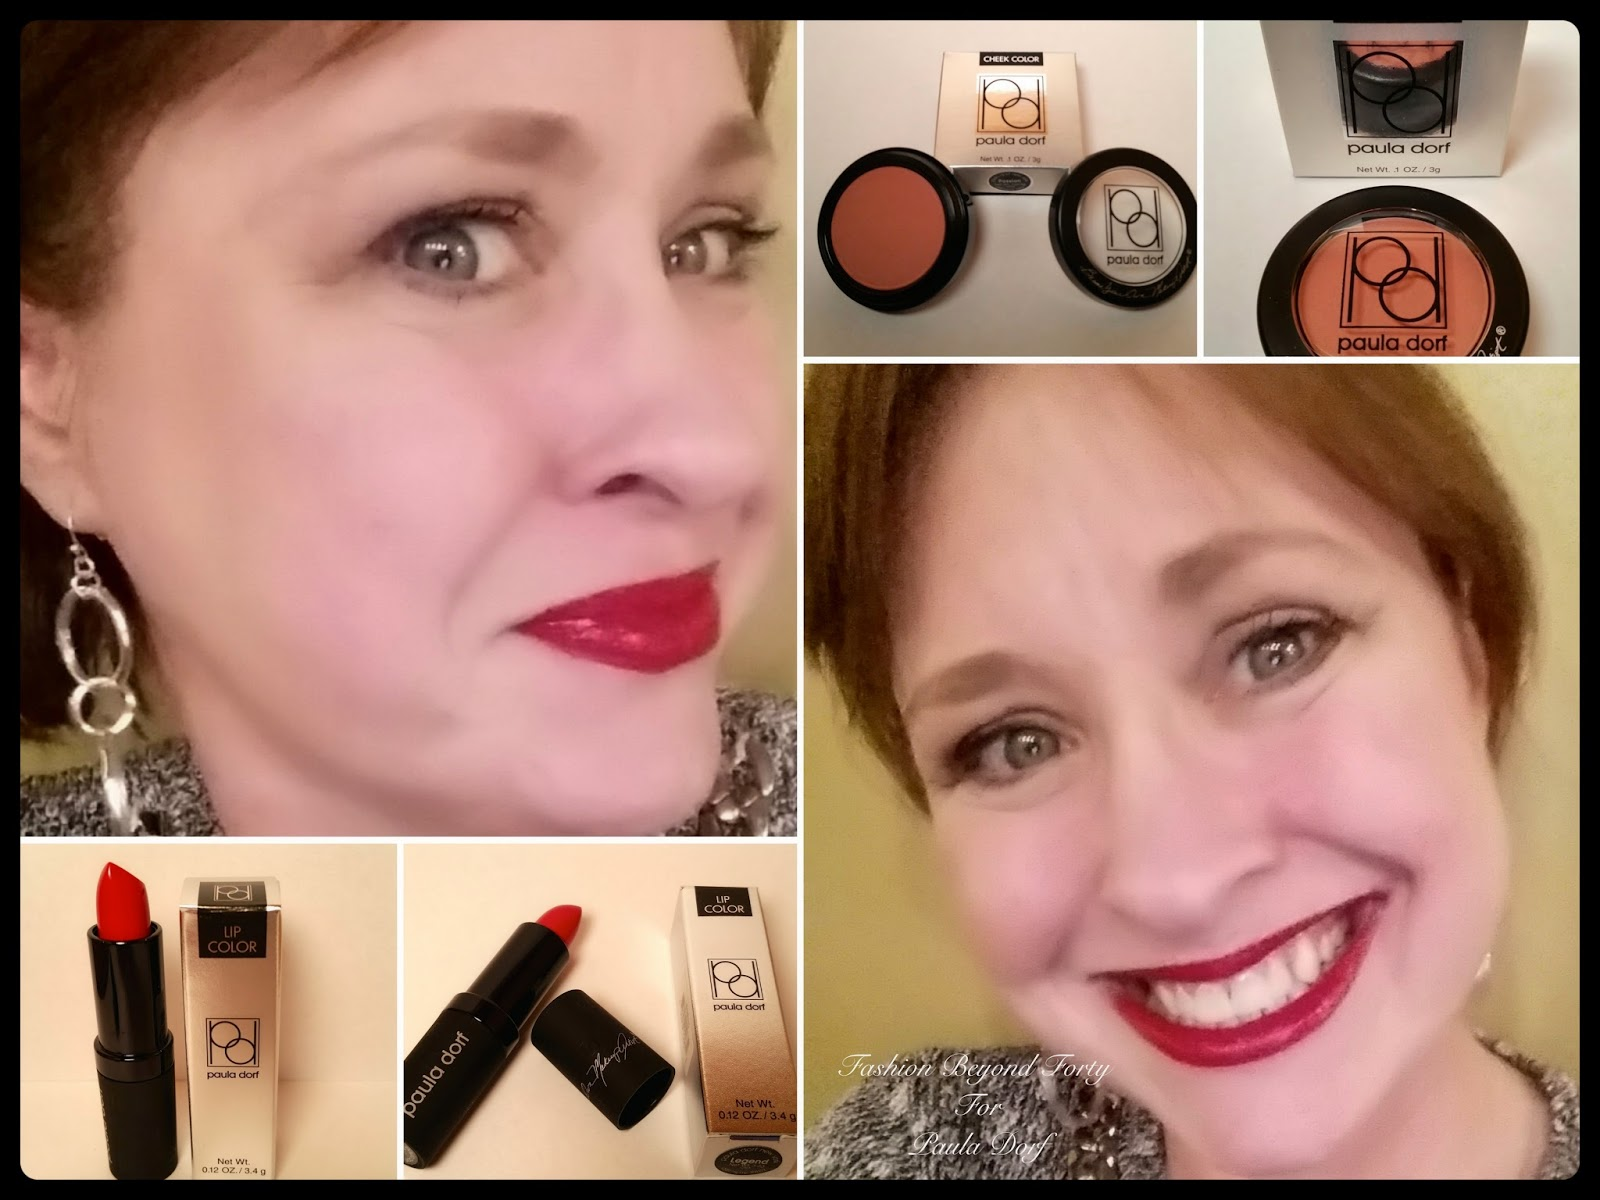 Paula Dorf Lipstick Legend and Blush Passion Review Fashion Beyond Forty